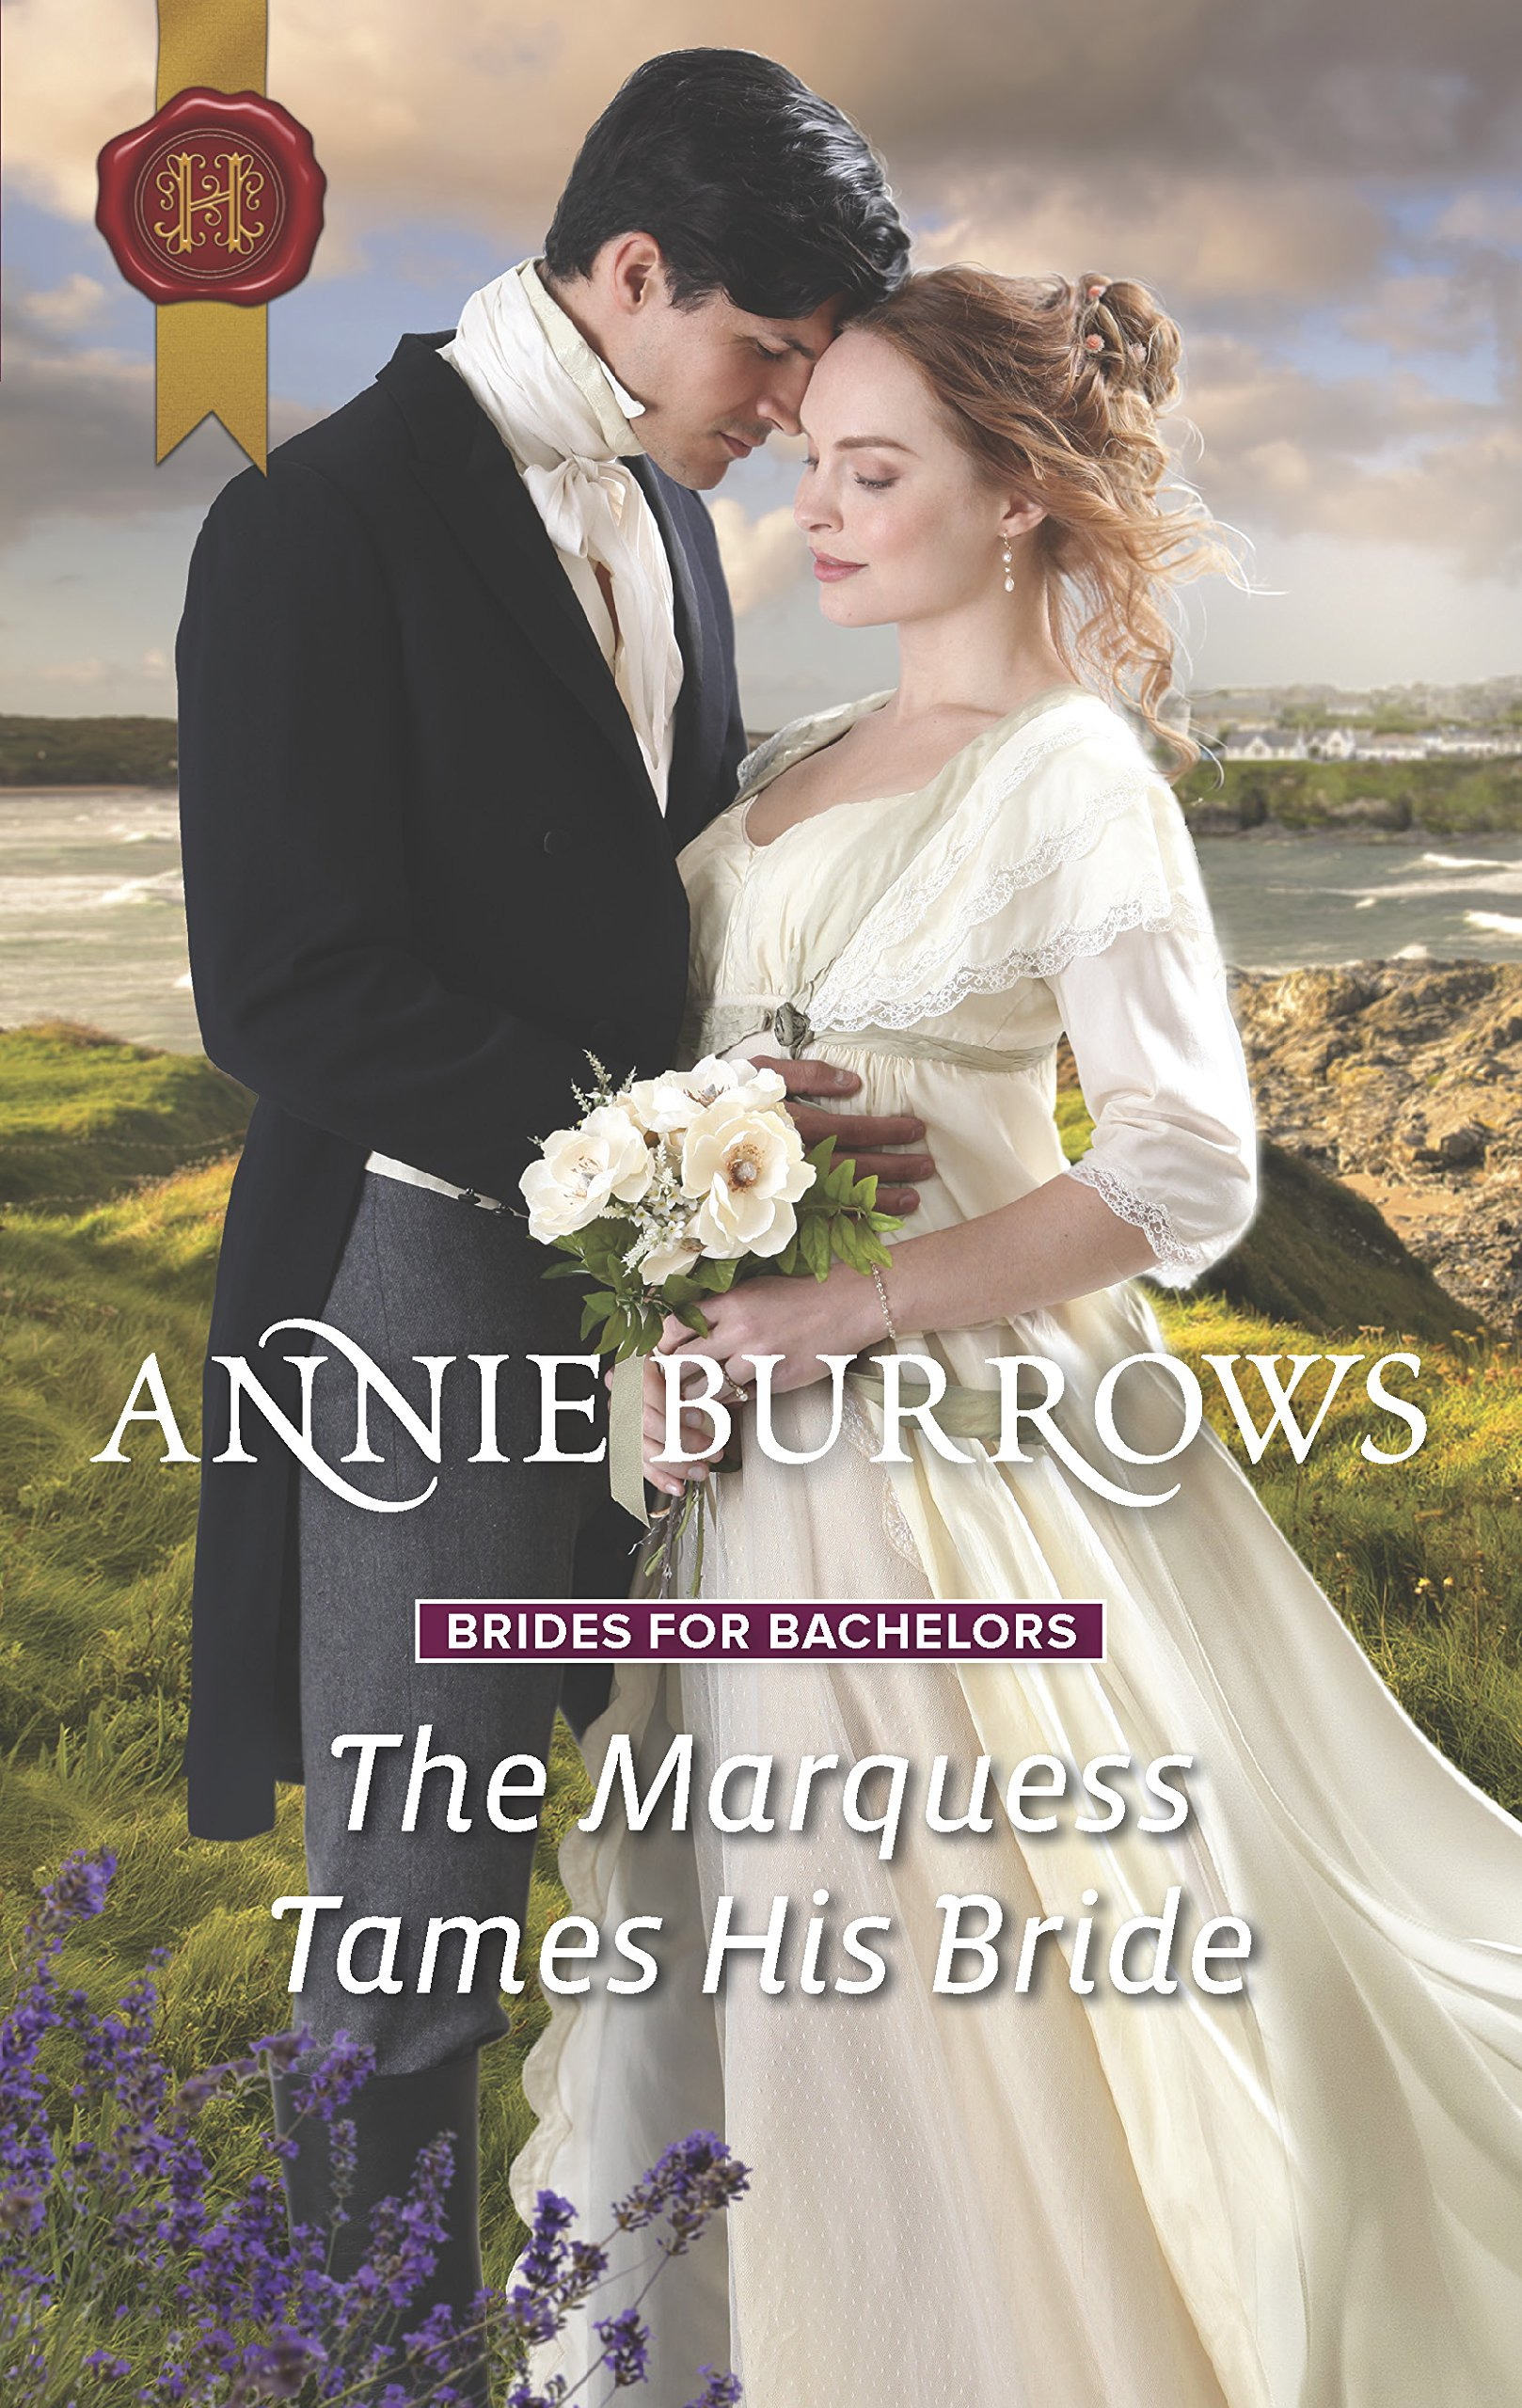 Download The Marquess Tames His Bride (Brides for Bachelors) pdf